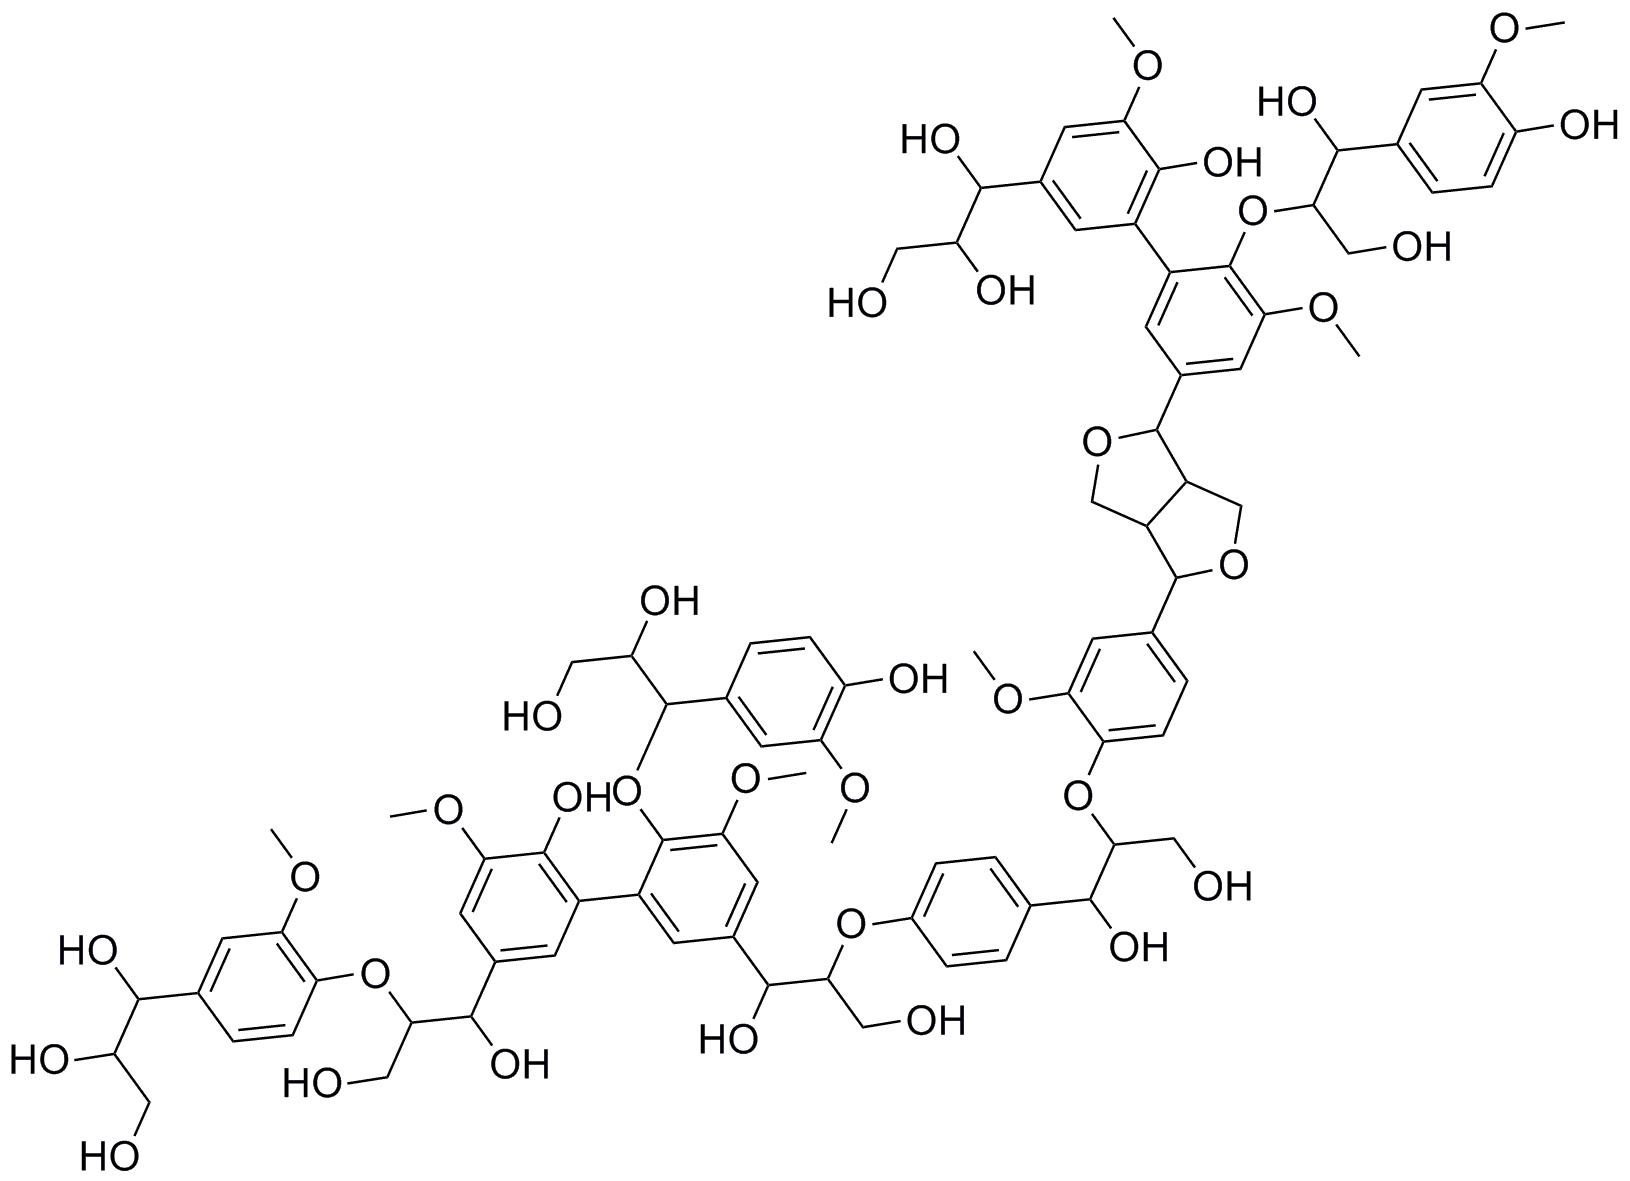 Figure 1: Example for the molecular structure of lignin